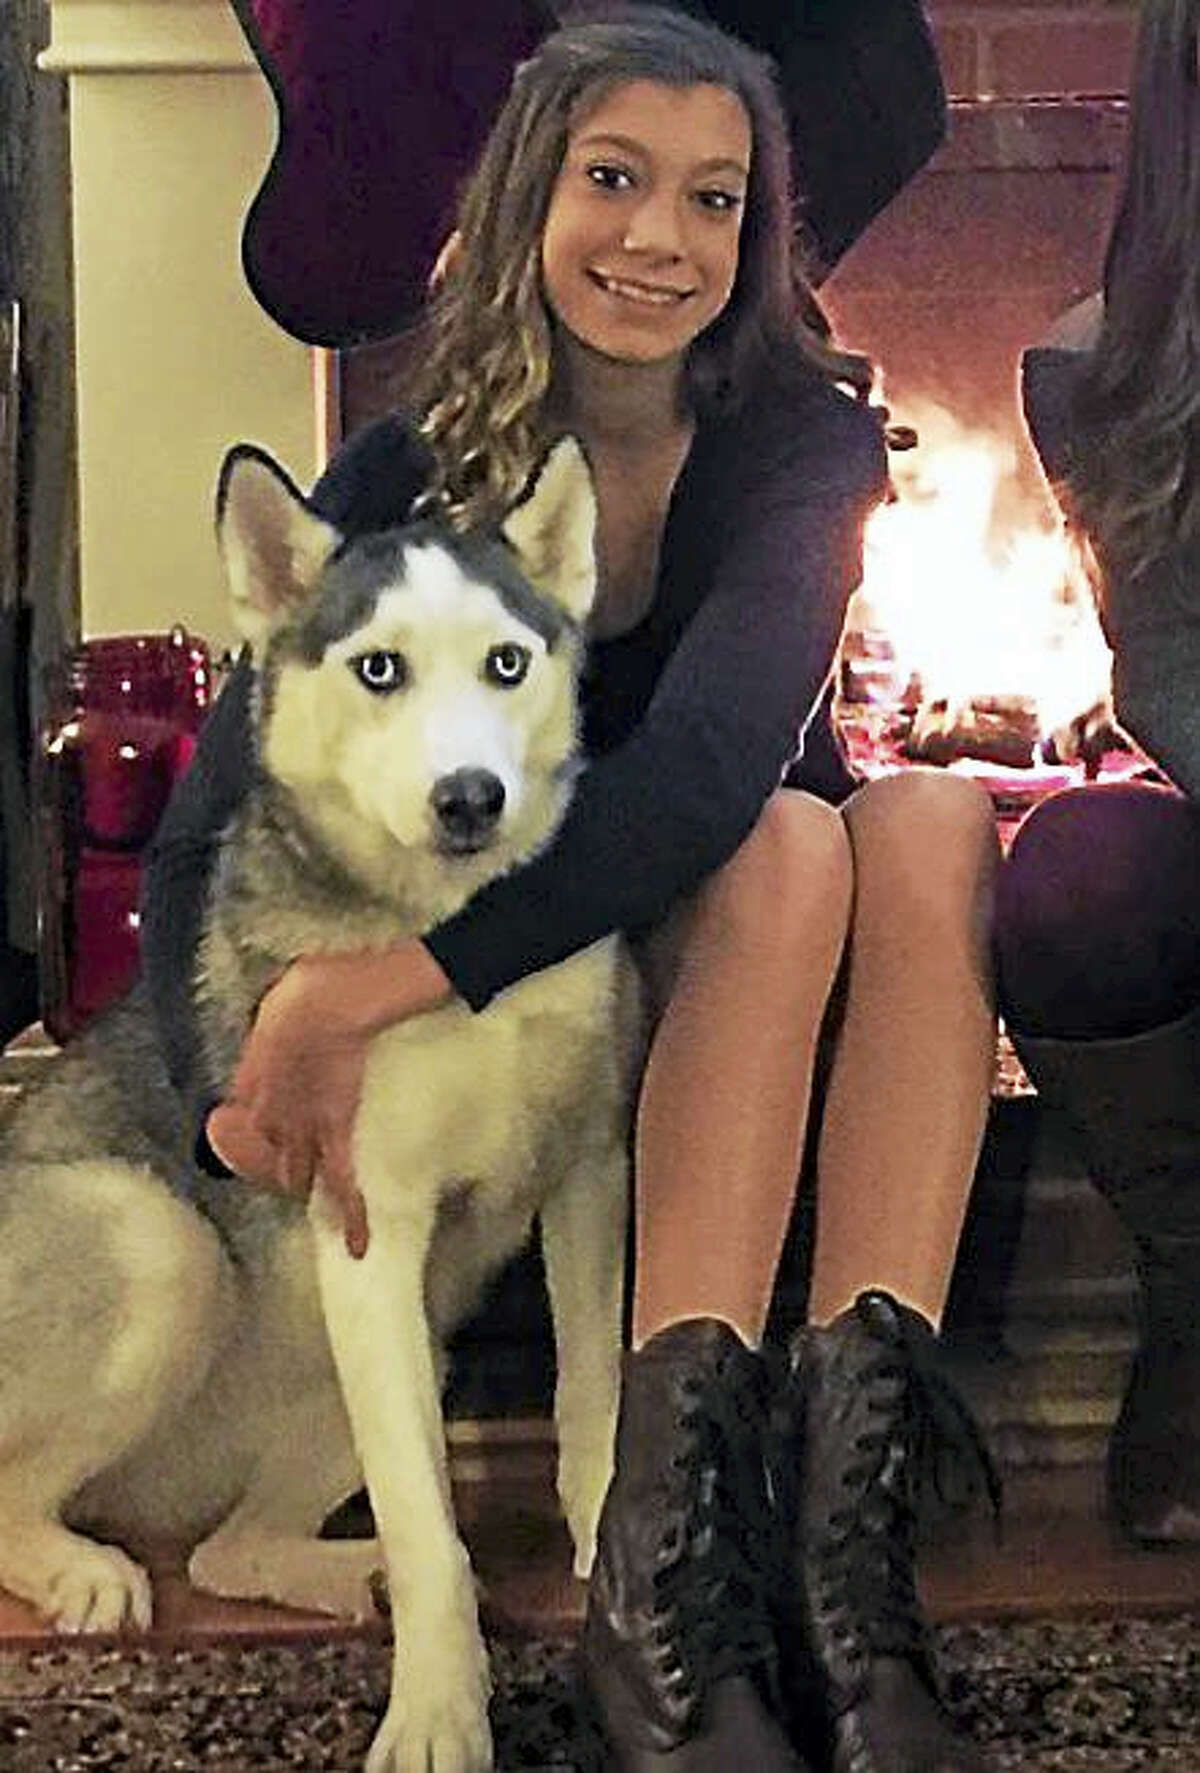 Madi Tranquillo, shown here with her dog, is holding a fundraiser breakfast at Applebee's in Torrington to support her Kindness in Motion project at Region 7 high school on May 6. She's selling tickets and will use the money to create care packages for children who have been placed under DCF care.